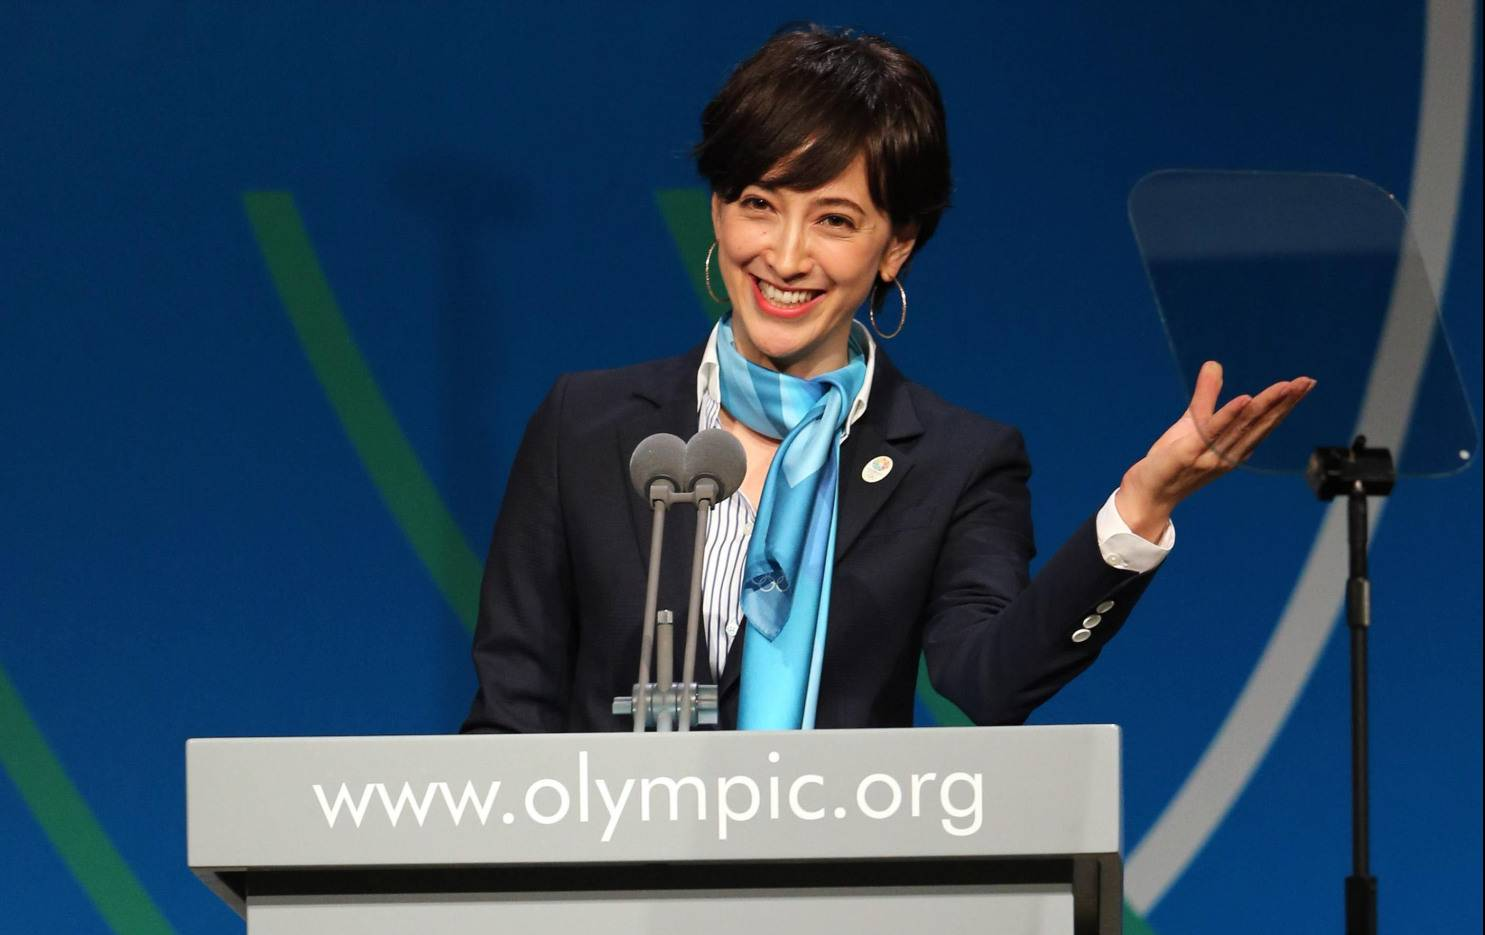 Helping hand: TV announcer Christel Takigawa addresses members of the International Olympic Committee in Buenos Aires in September 2013. | KYODO